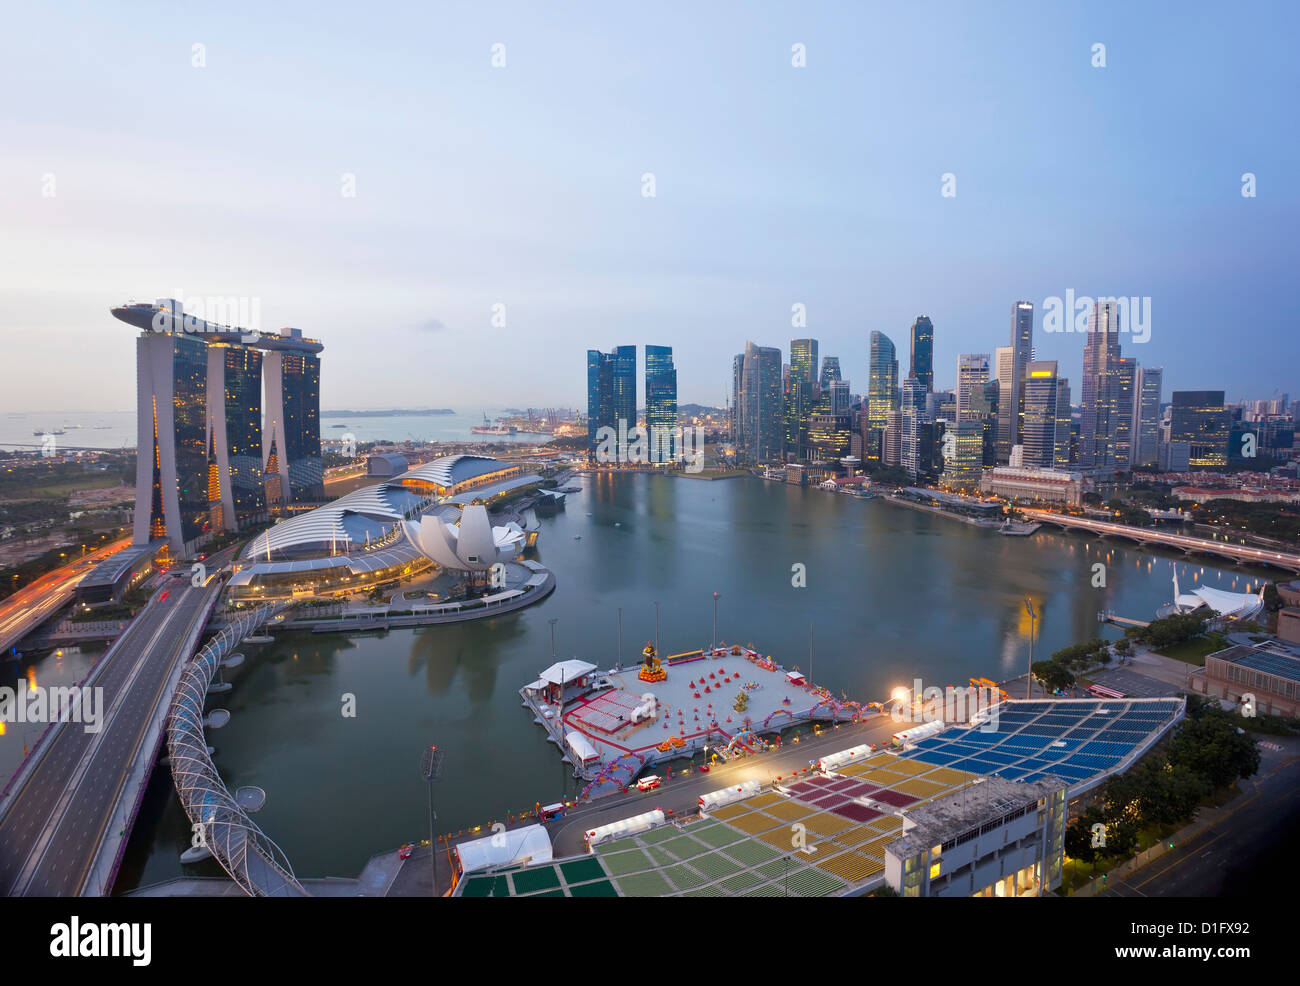 L'Helix Bridge et Marina Bay Sands, elevated view sur Singapour, Marina Bay, à Singapour, en Asie du Sud Photo Stock